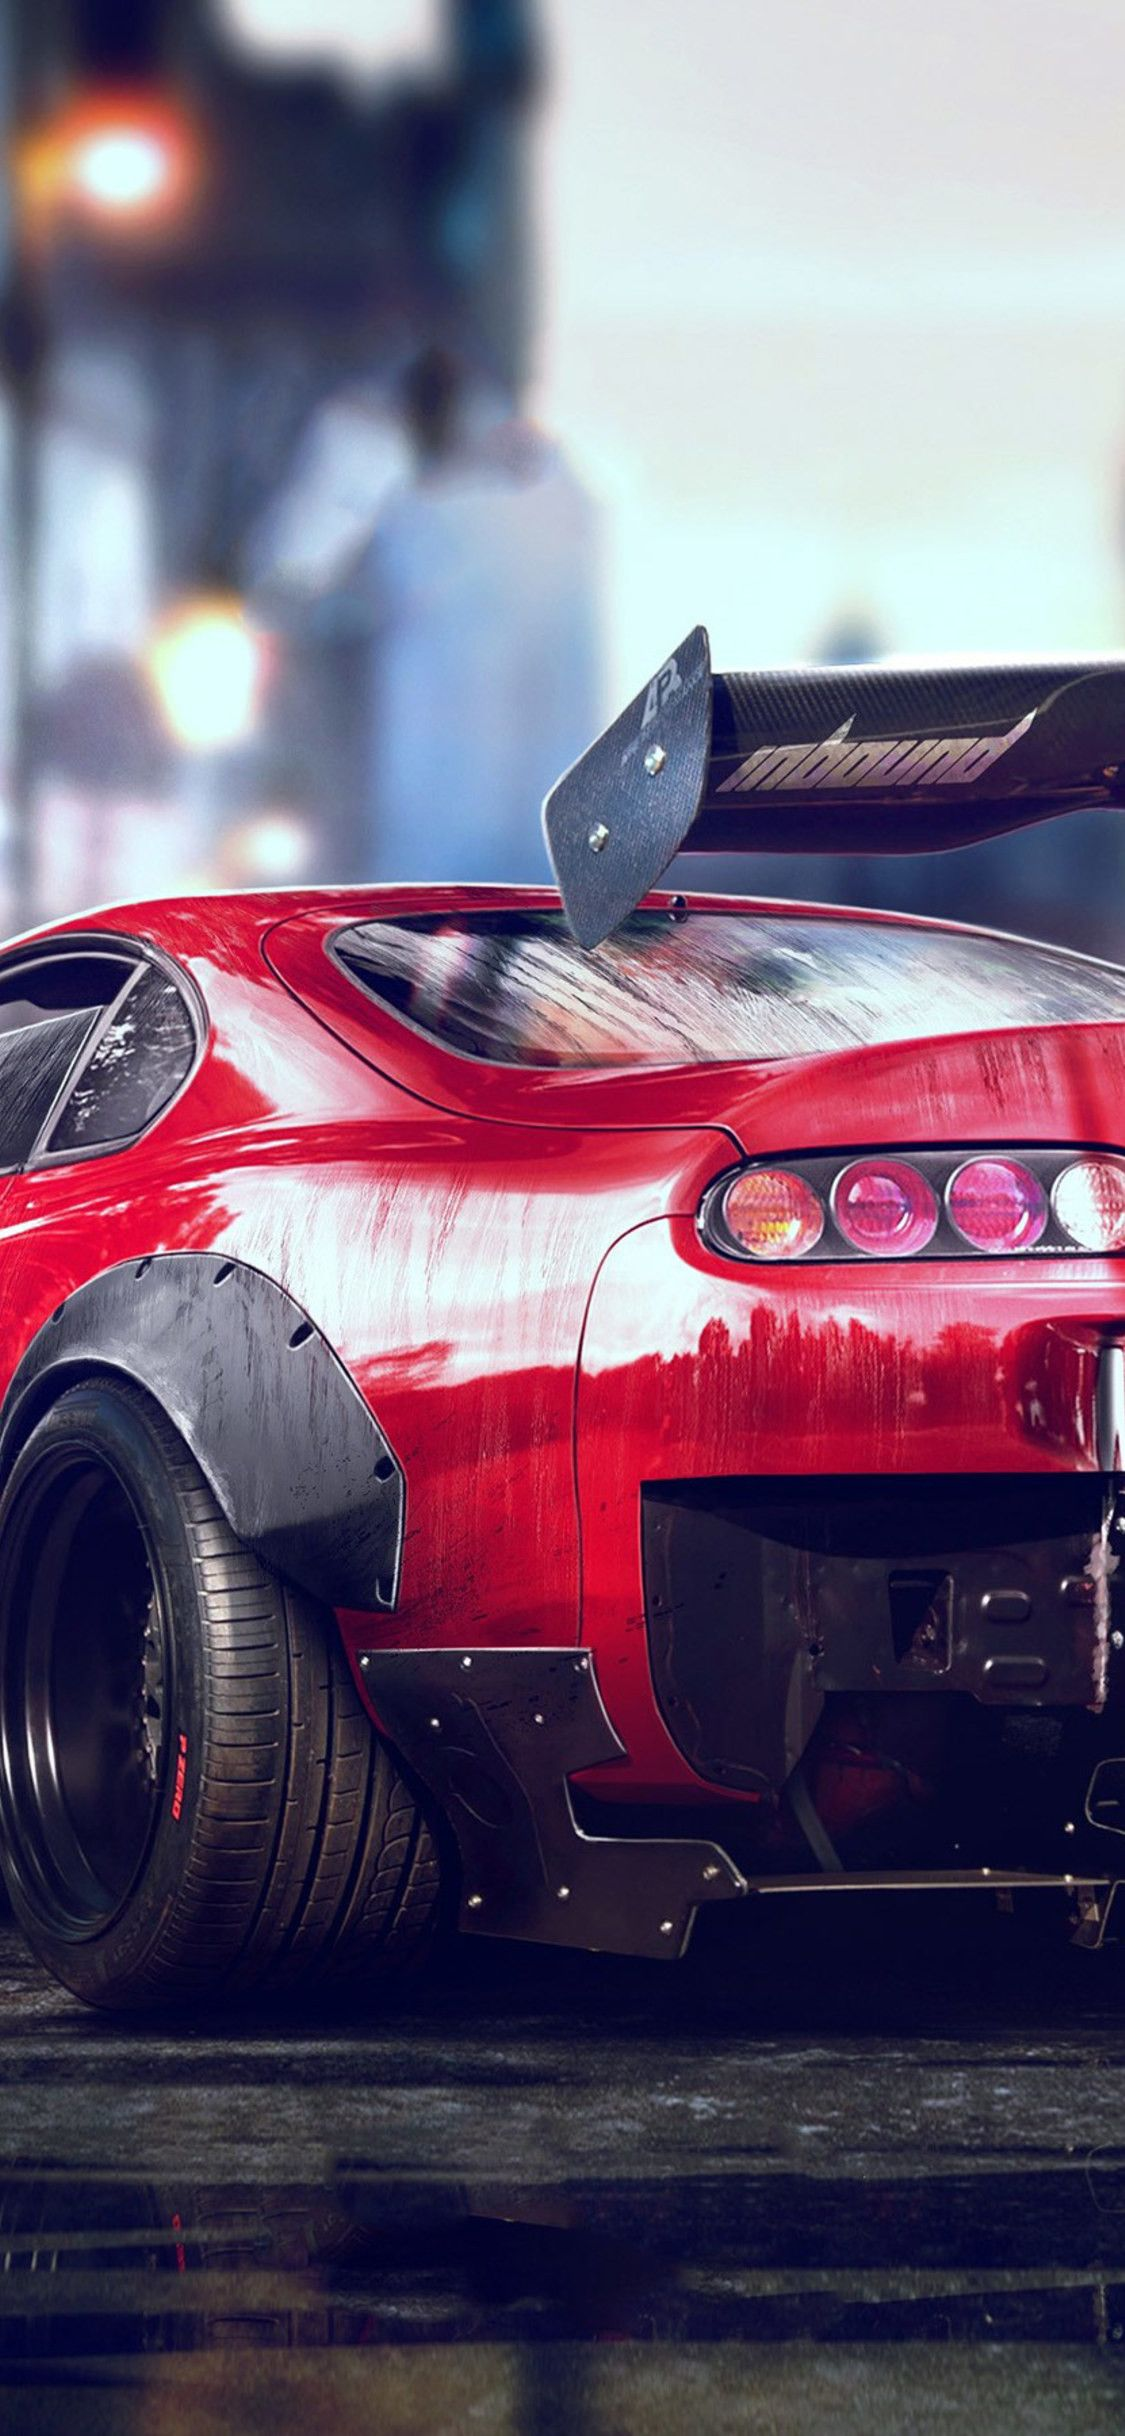 4k Wallpaper Iphone Cars 3d Wallpapers Toyota Supra Toyota Supra Mk4 Car Iphone Wallpaper